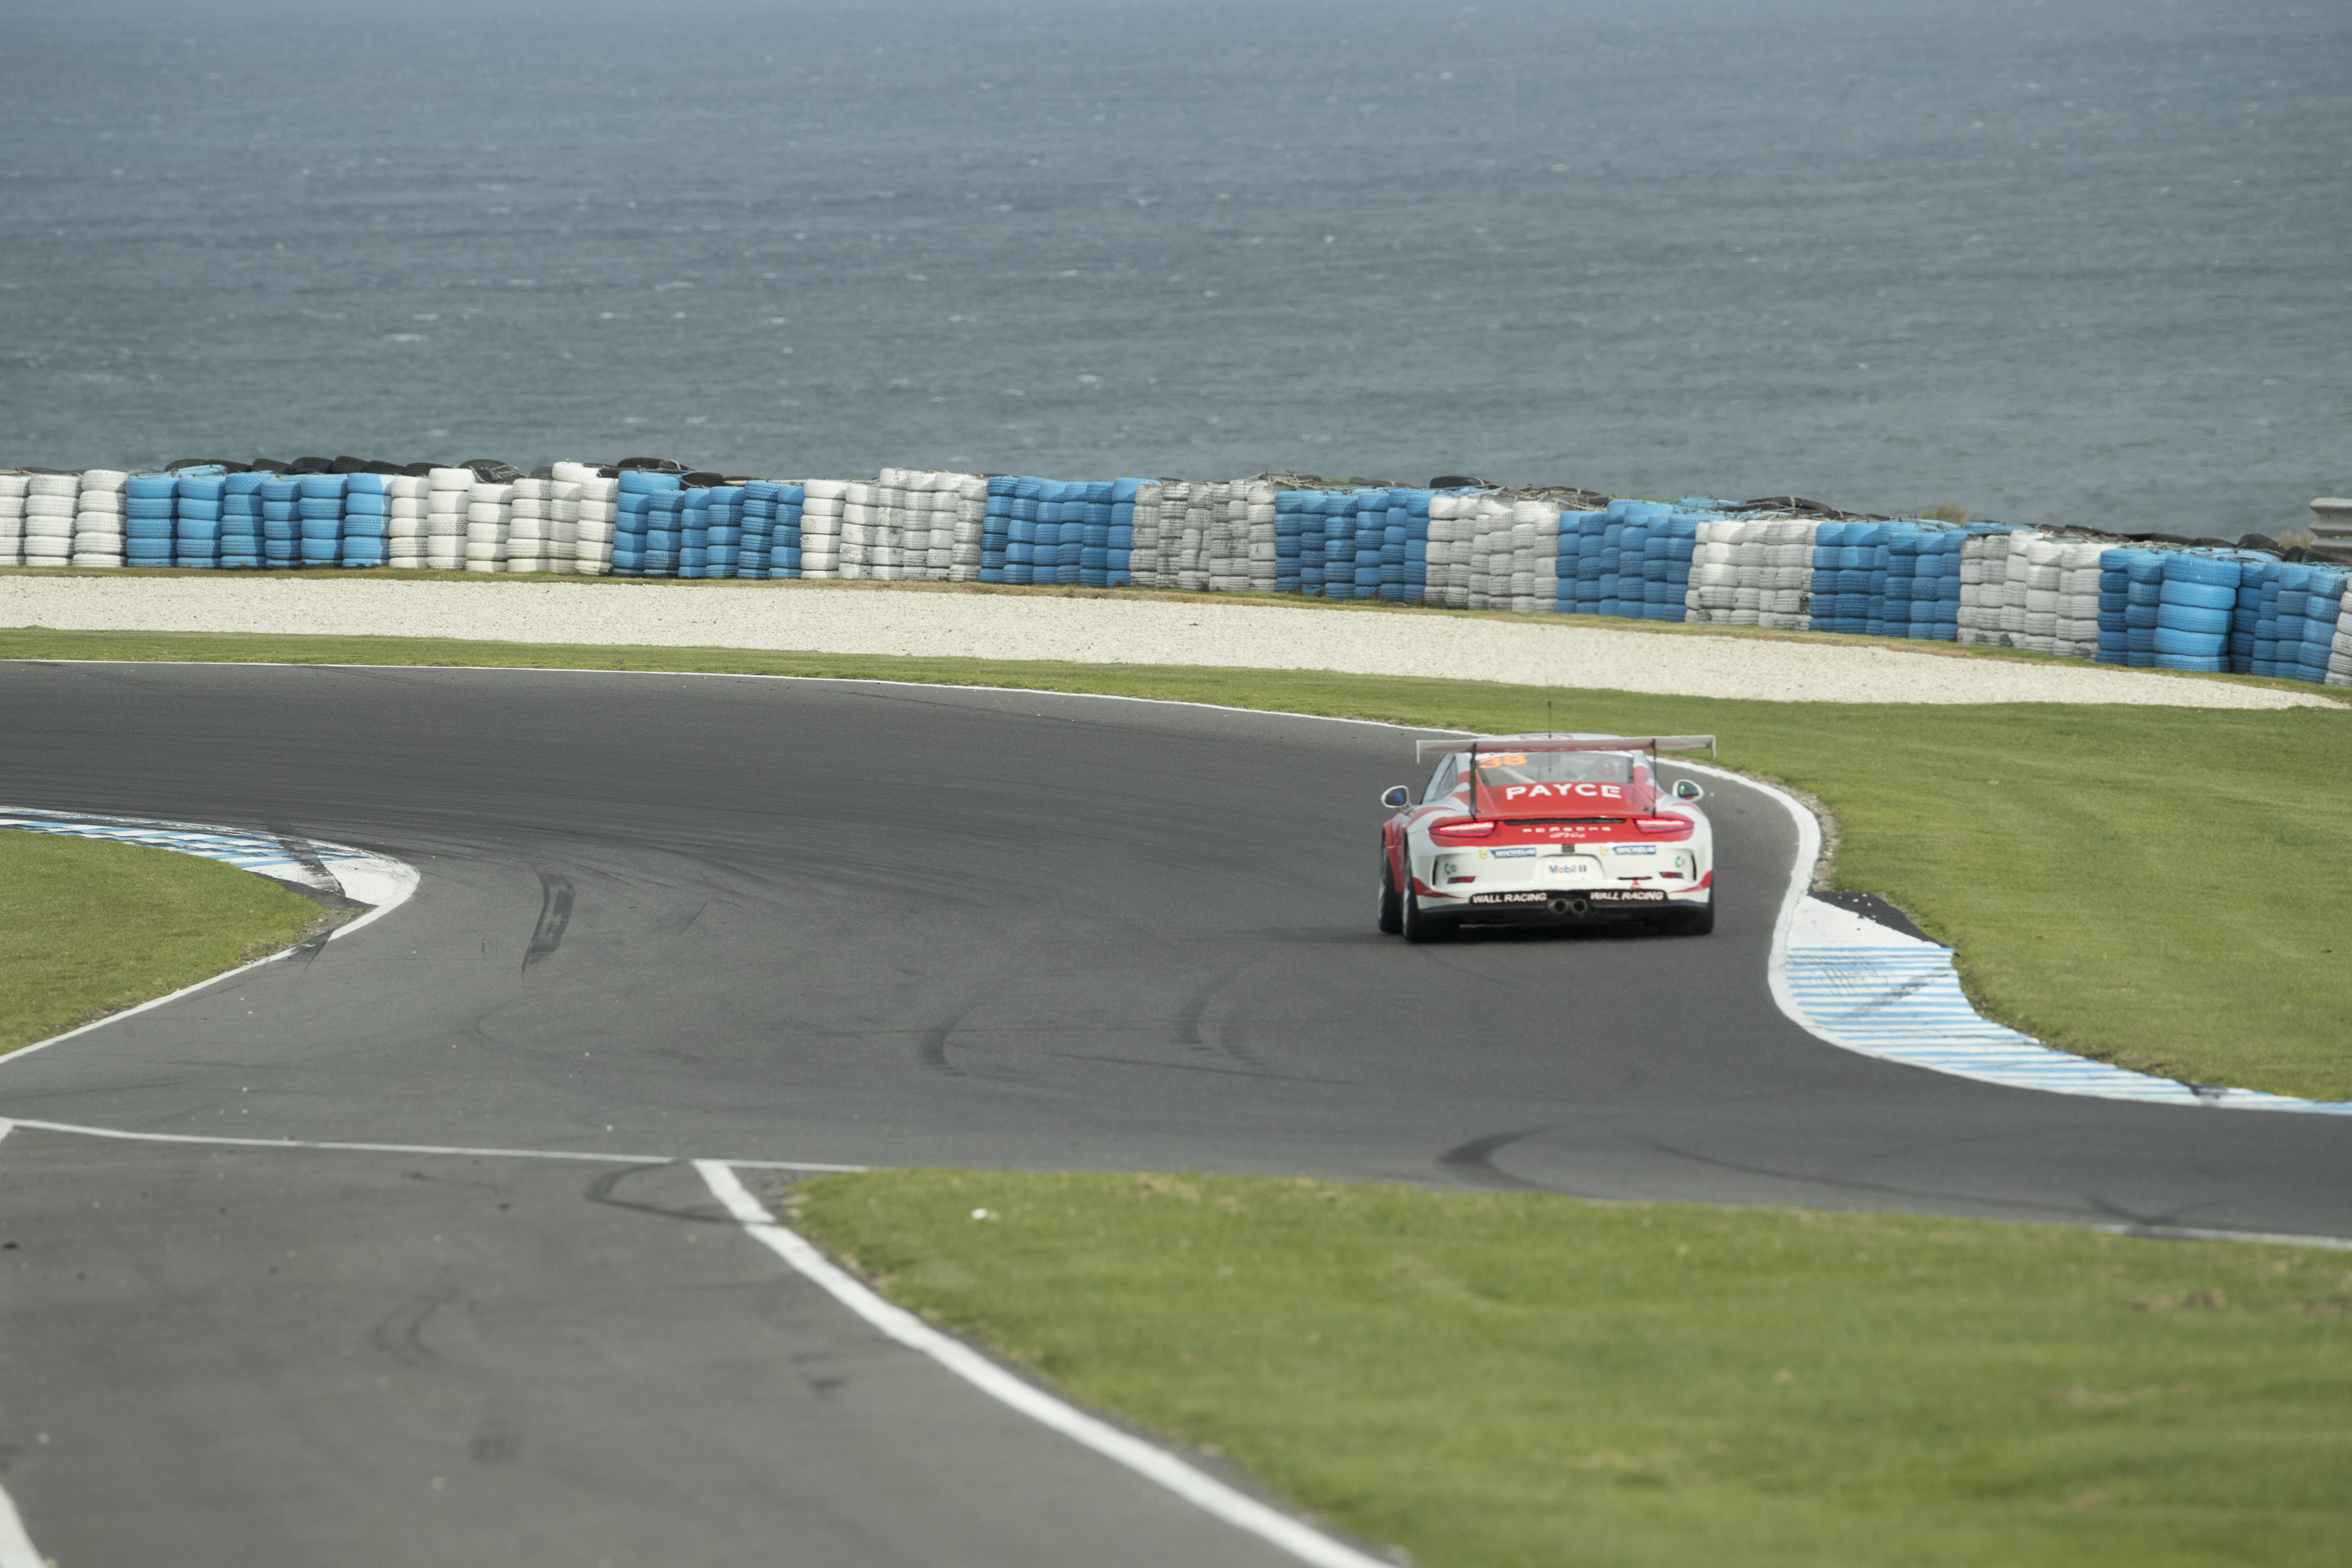 p38-Wall-CarreraCup-R3-2017-02297